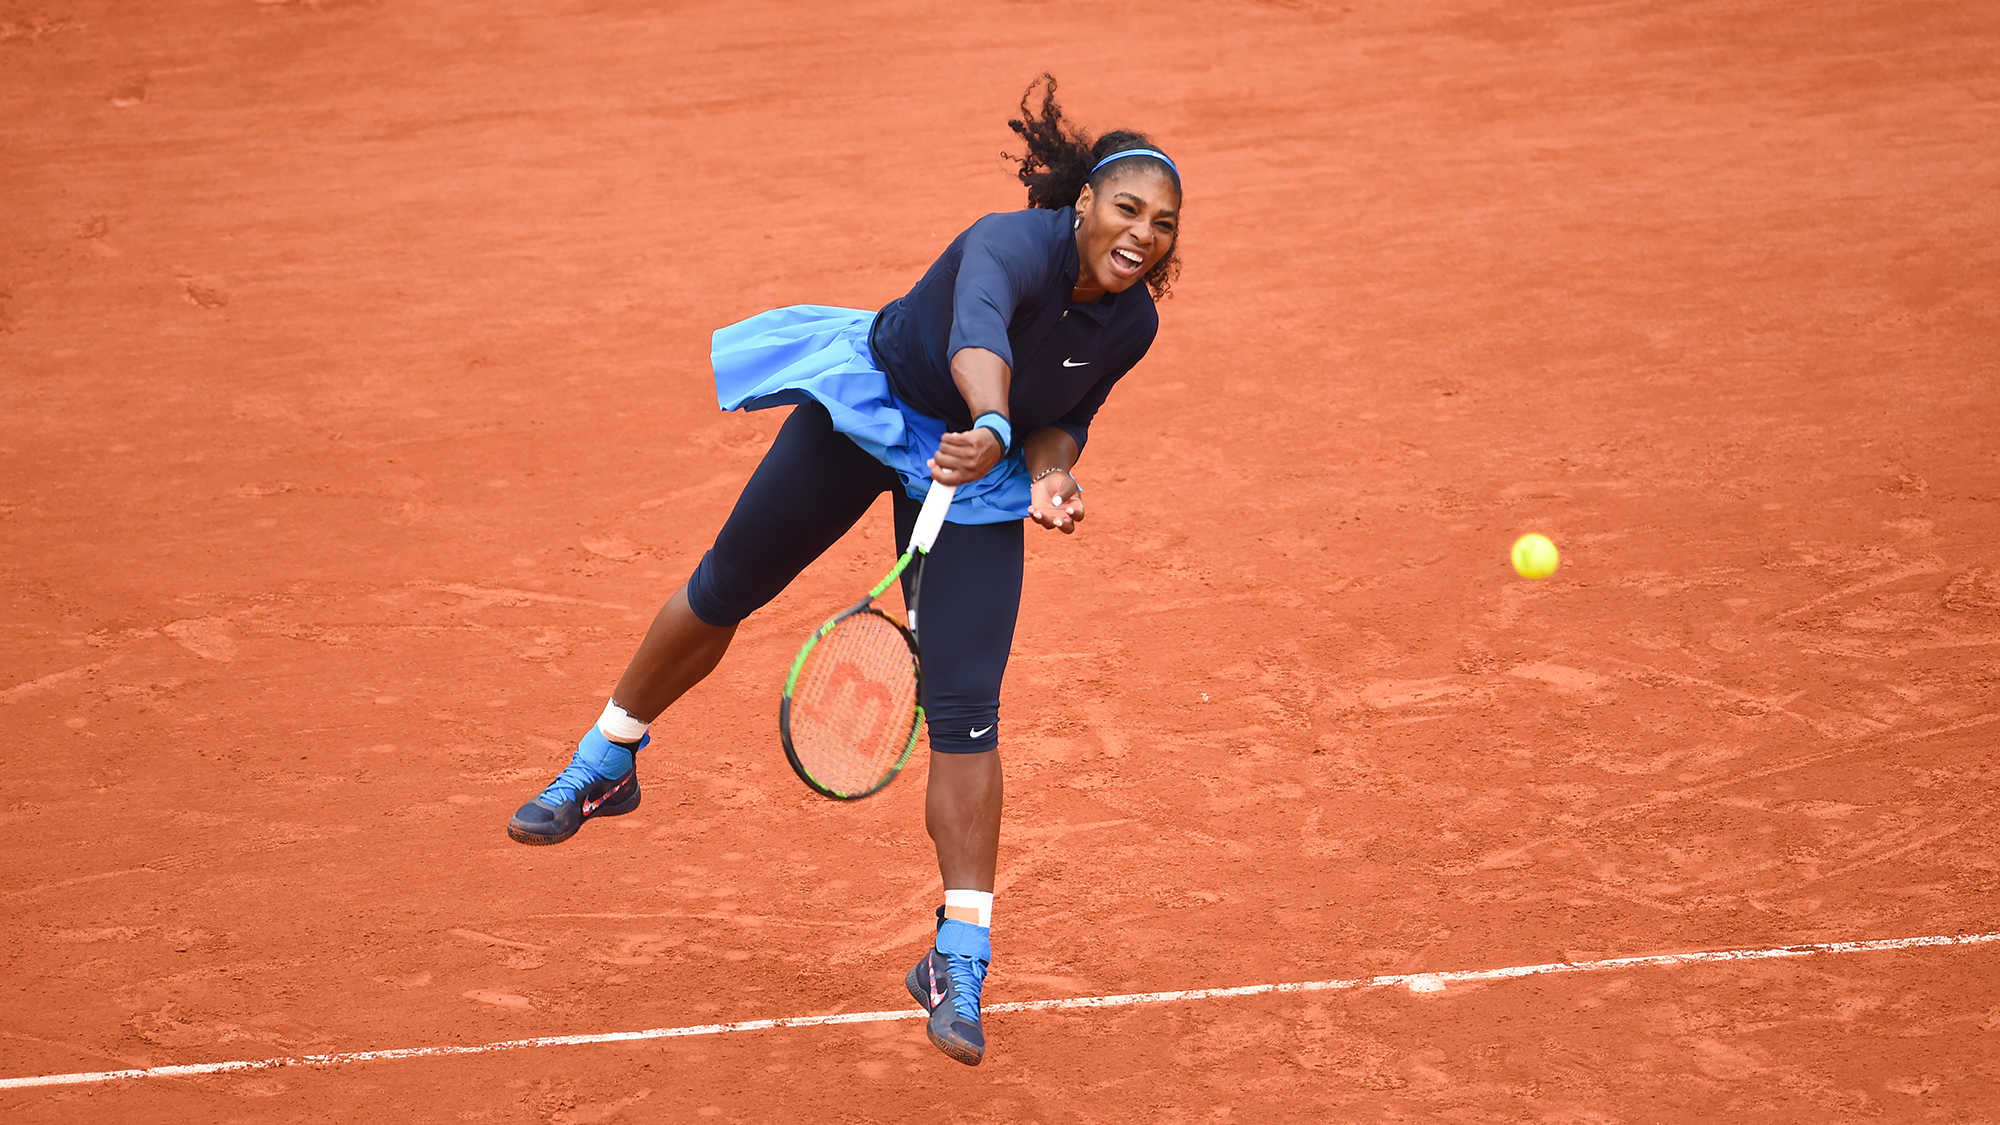 Mailbag: Serena Williams Should Absolutely Be Seeded at the French Open